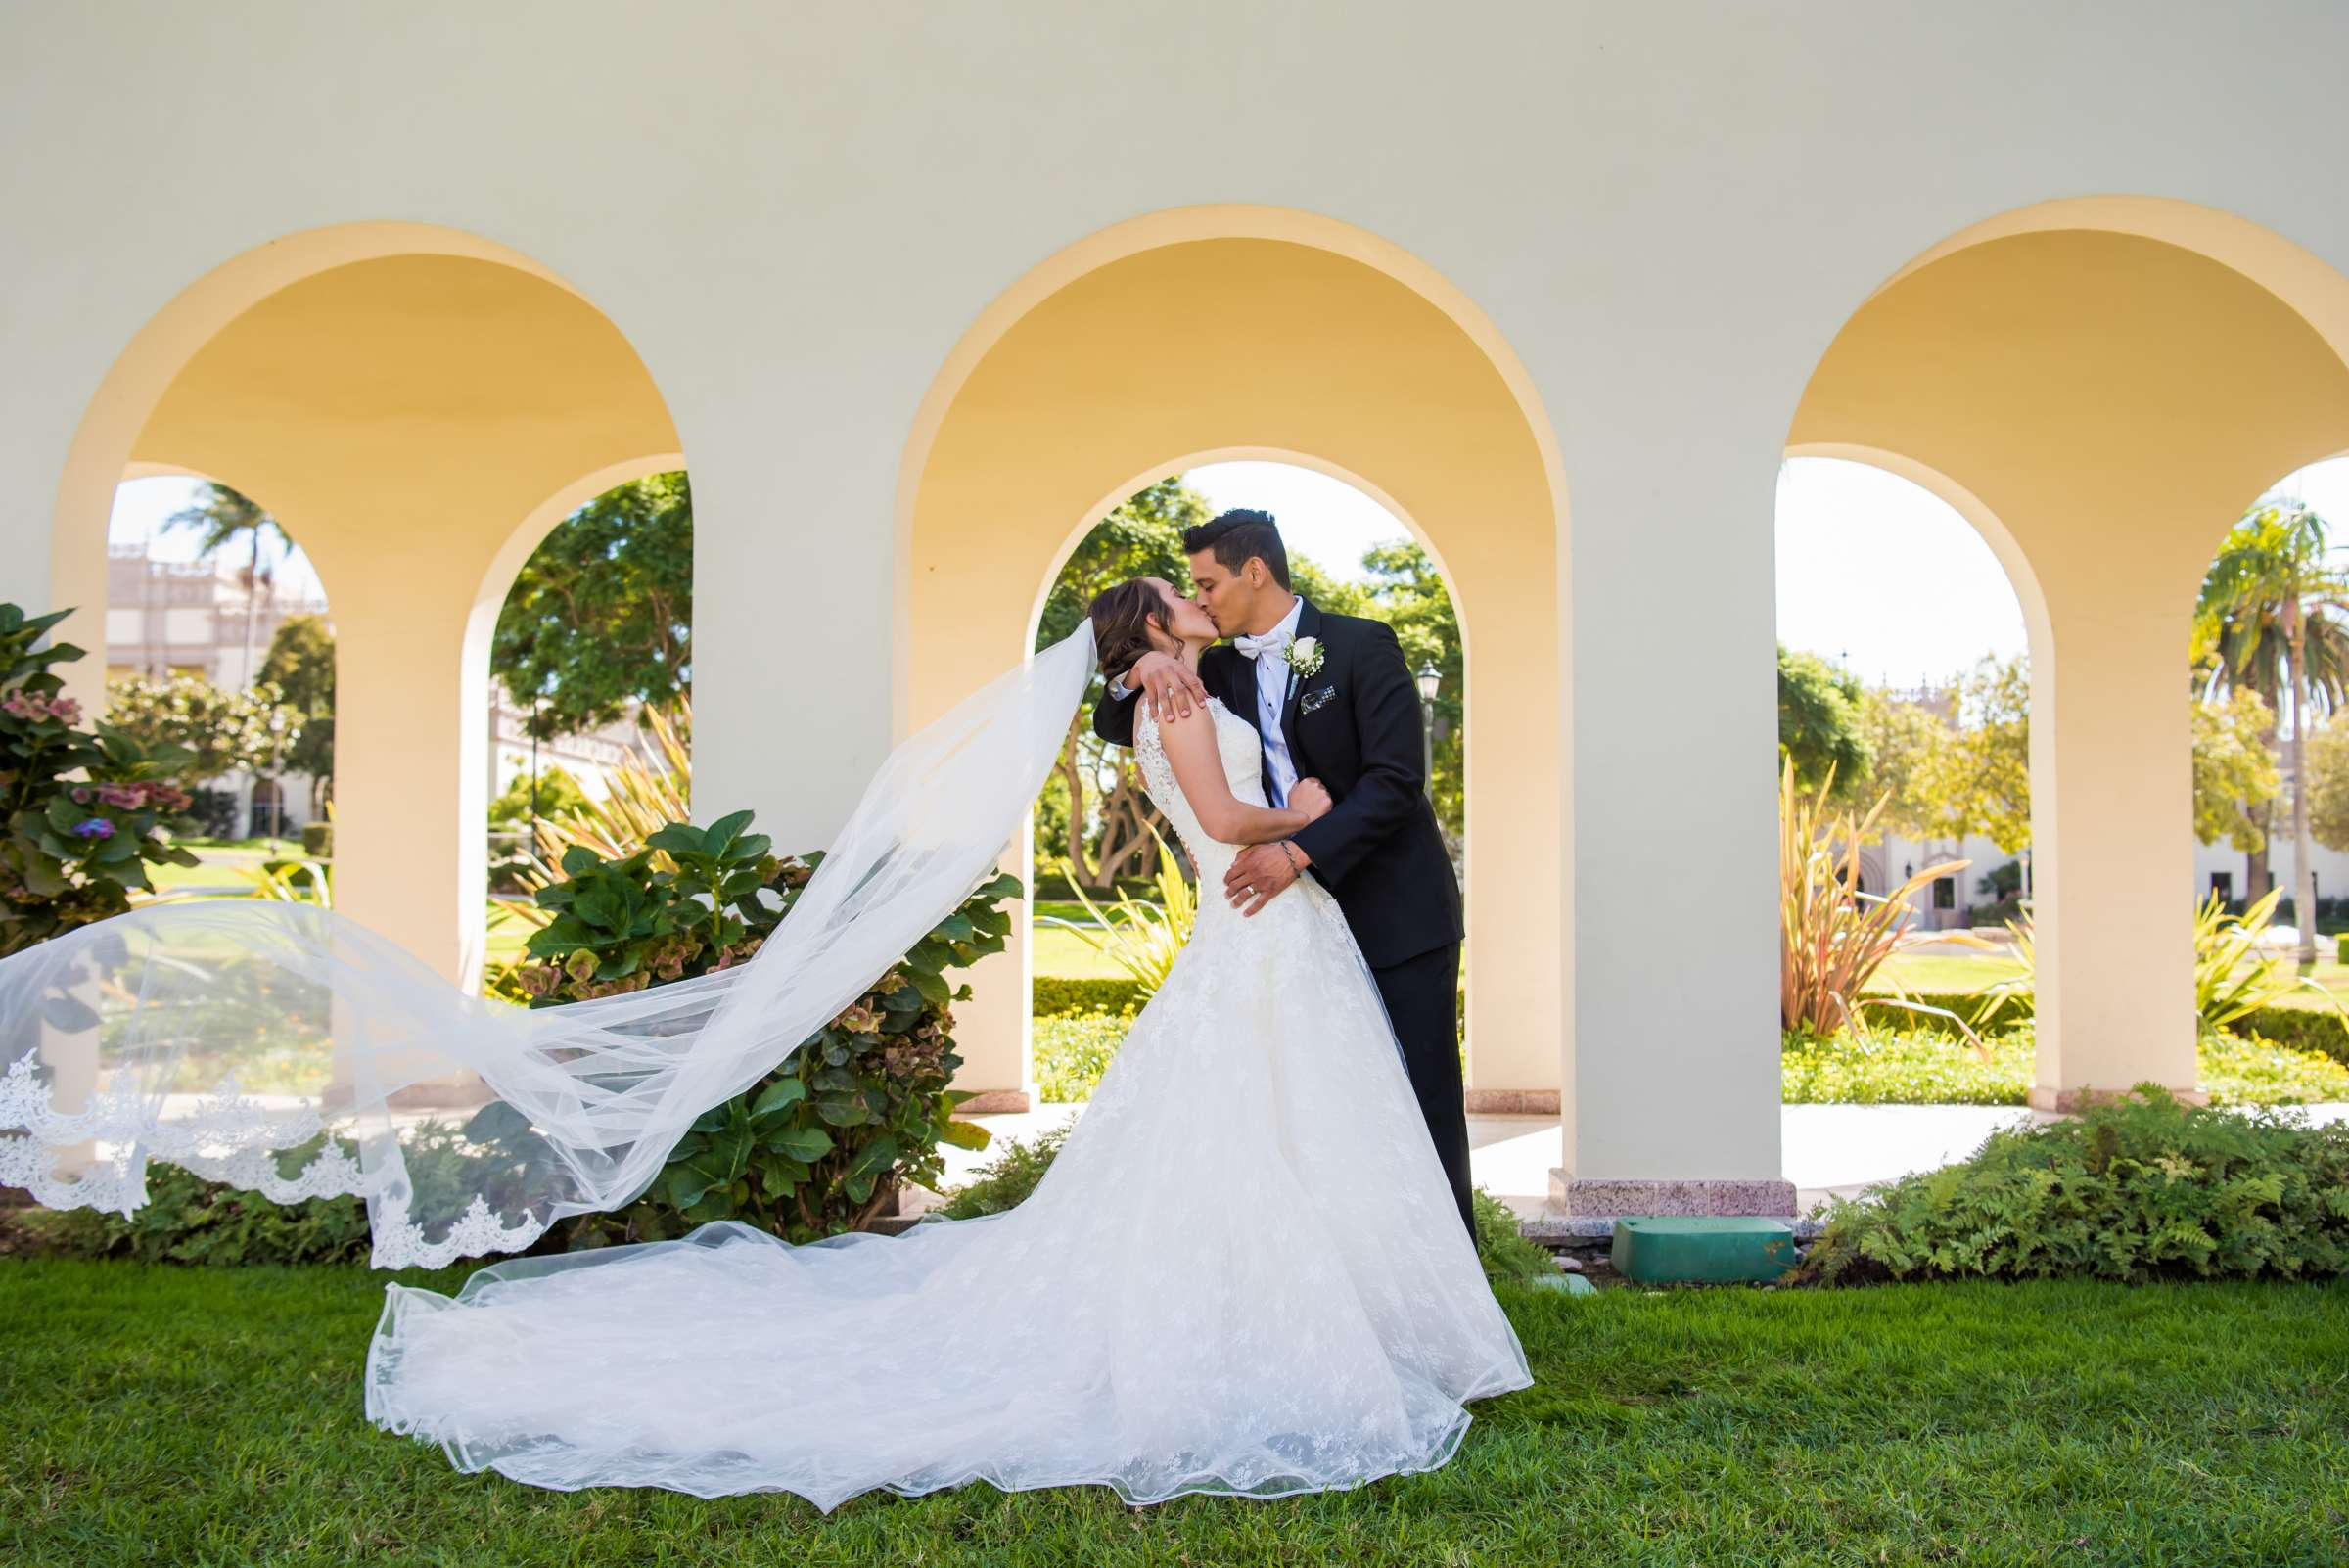 The Immaculata Wedding, Arianna and Jonah Wedding Photo #90 by True Photography